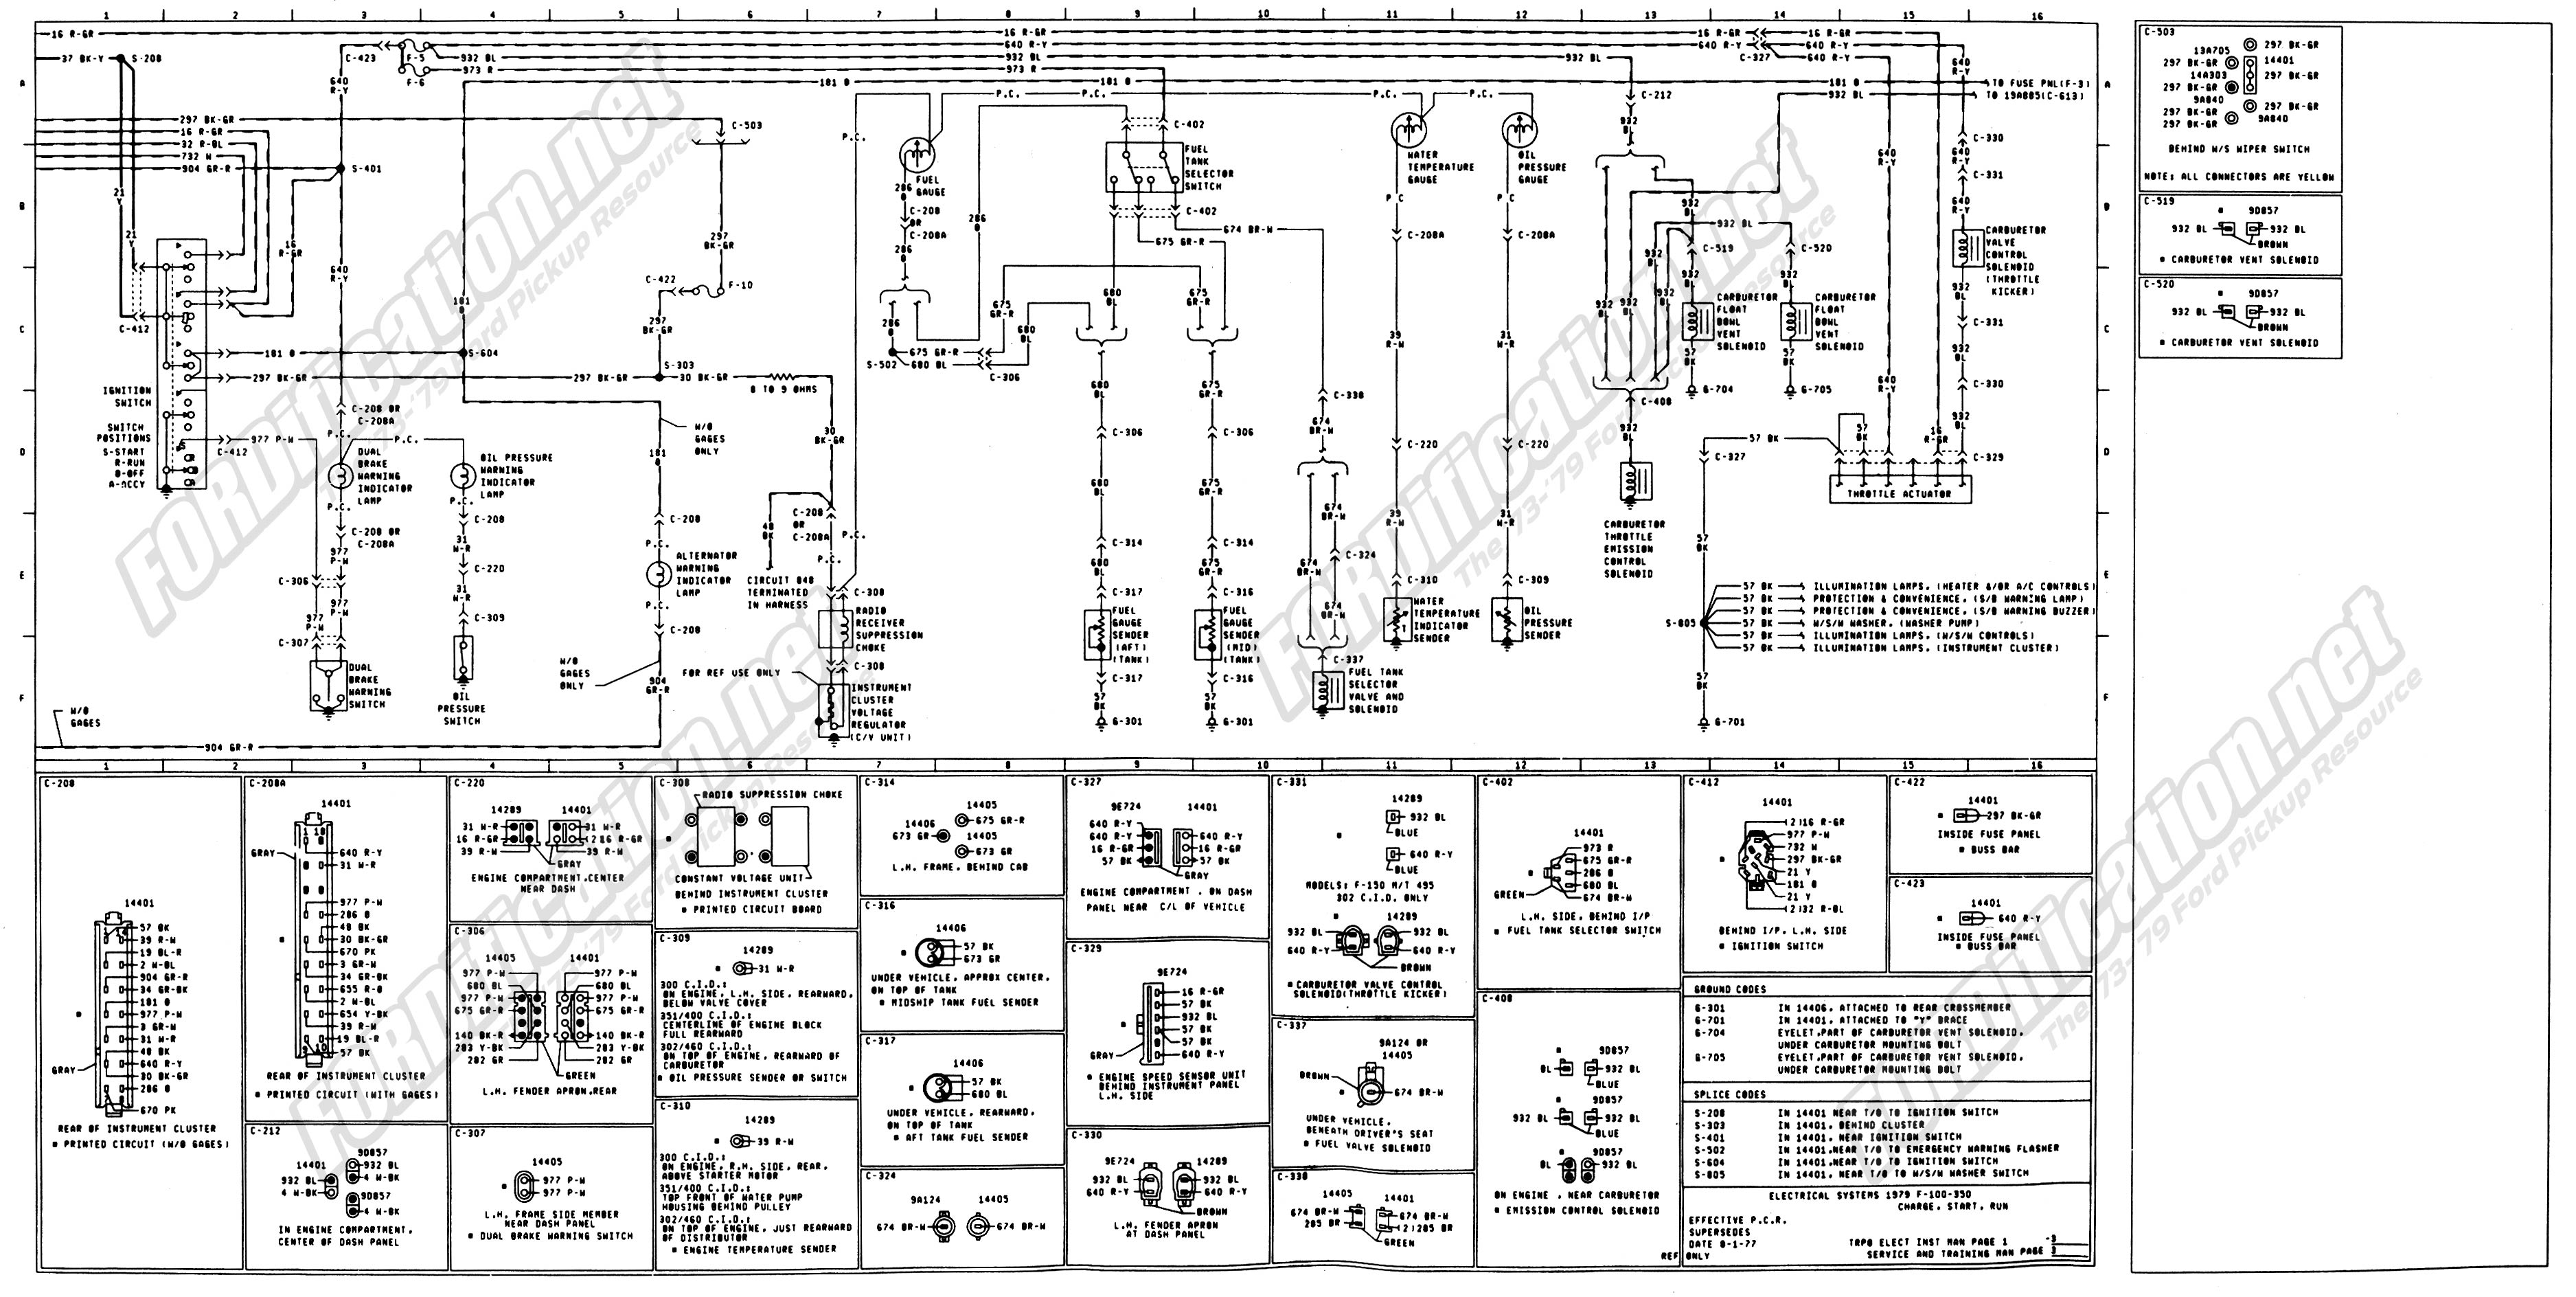 1973 1979 ford truck wiring diagrams schematics fordification net rh fordification net 99 F250 Super Duty Fuse Diagram 2002 F250 Fuse Box Diagram